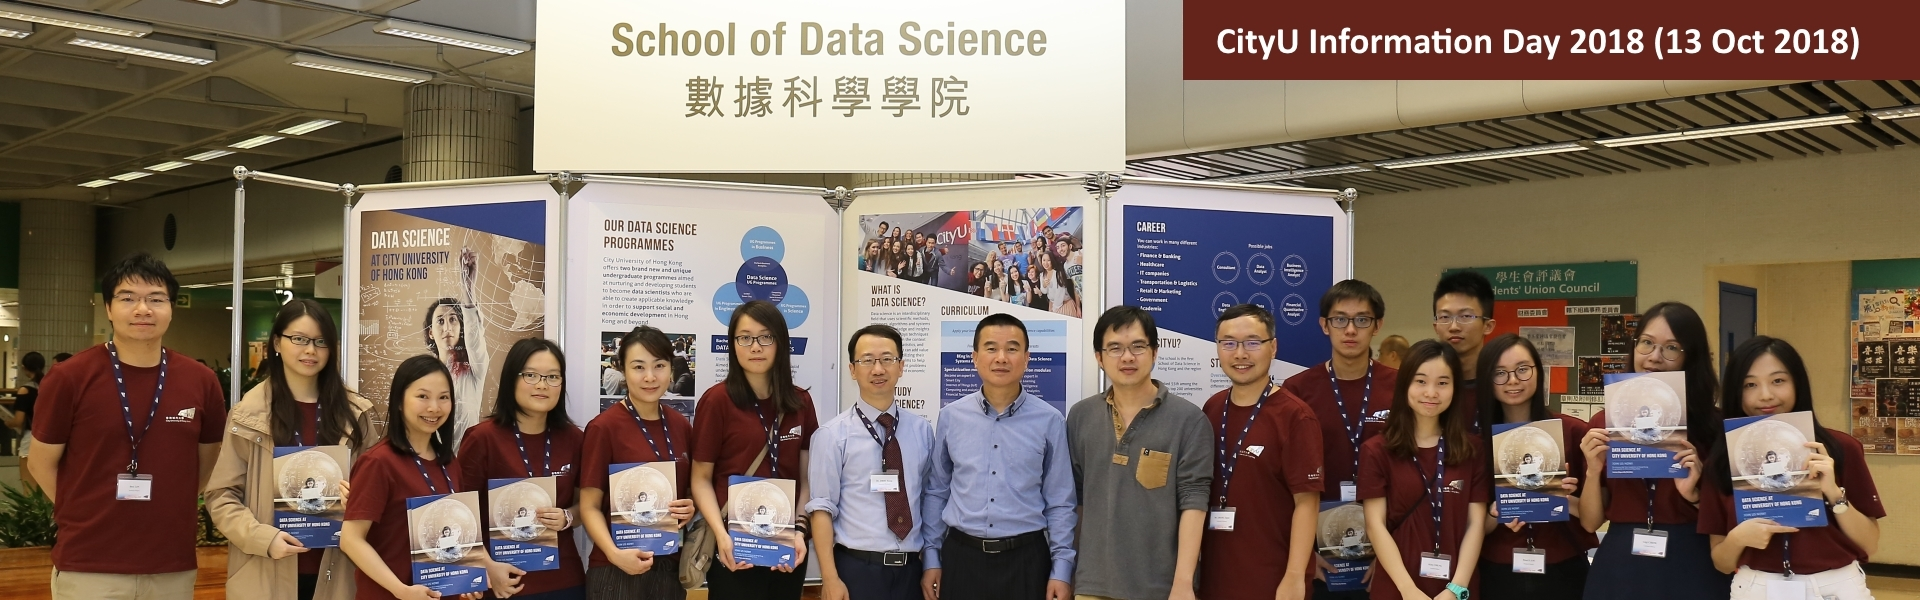 CityU Information Day 2018